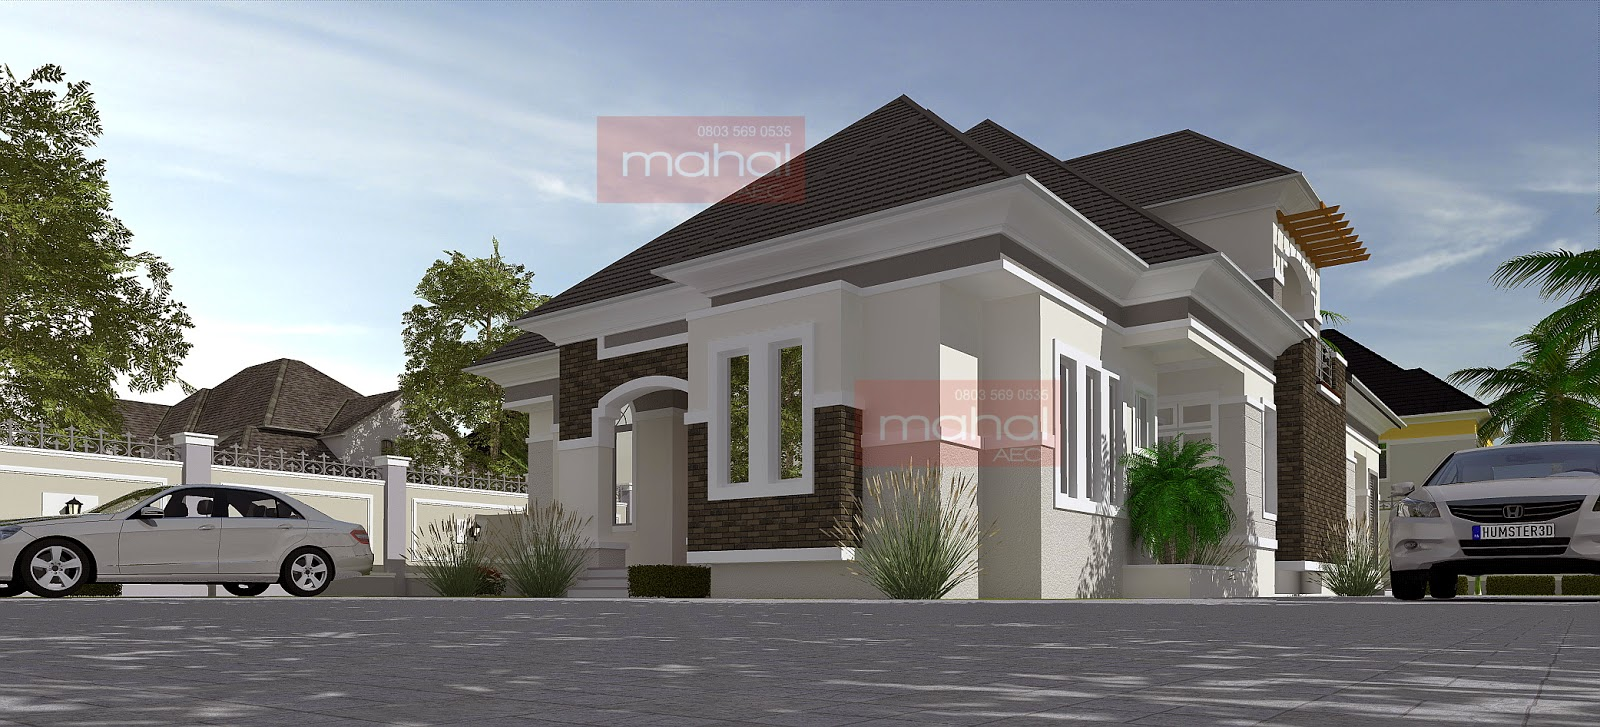 Contemporary nigerian residential architecture caoimhe house for Nigerian home designs photos